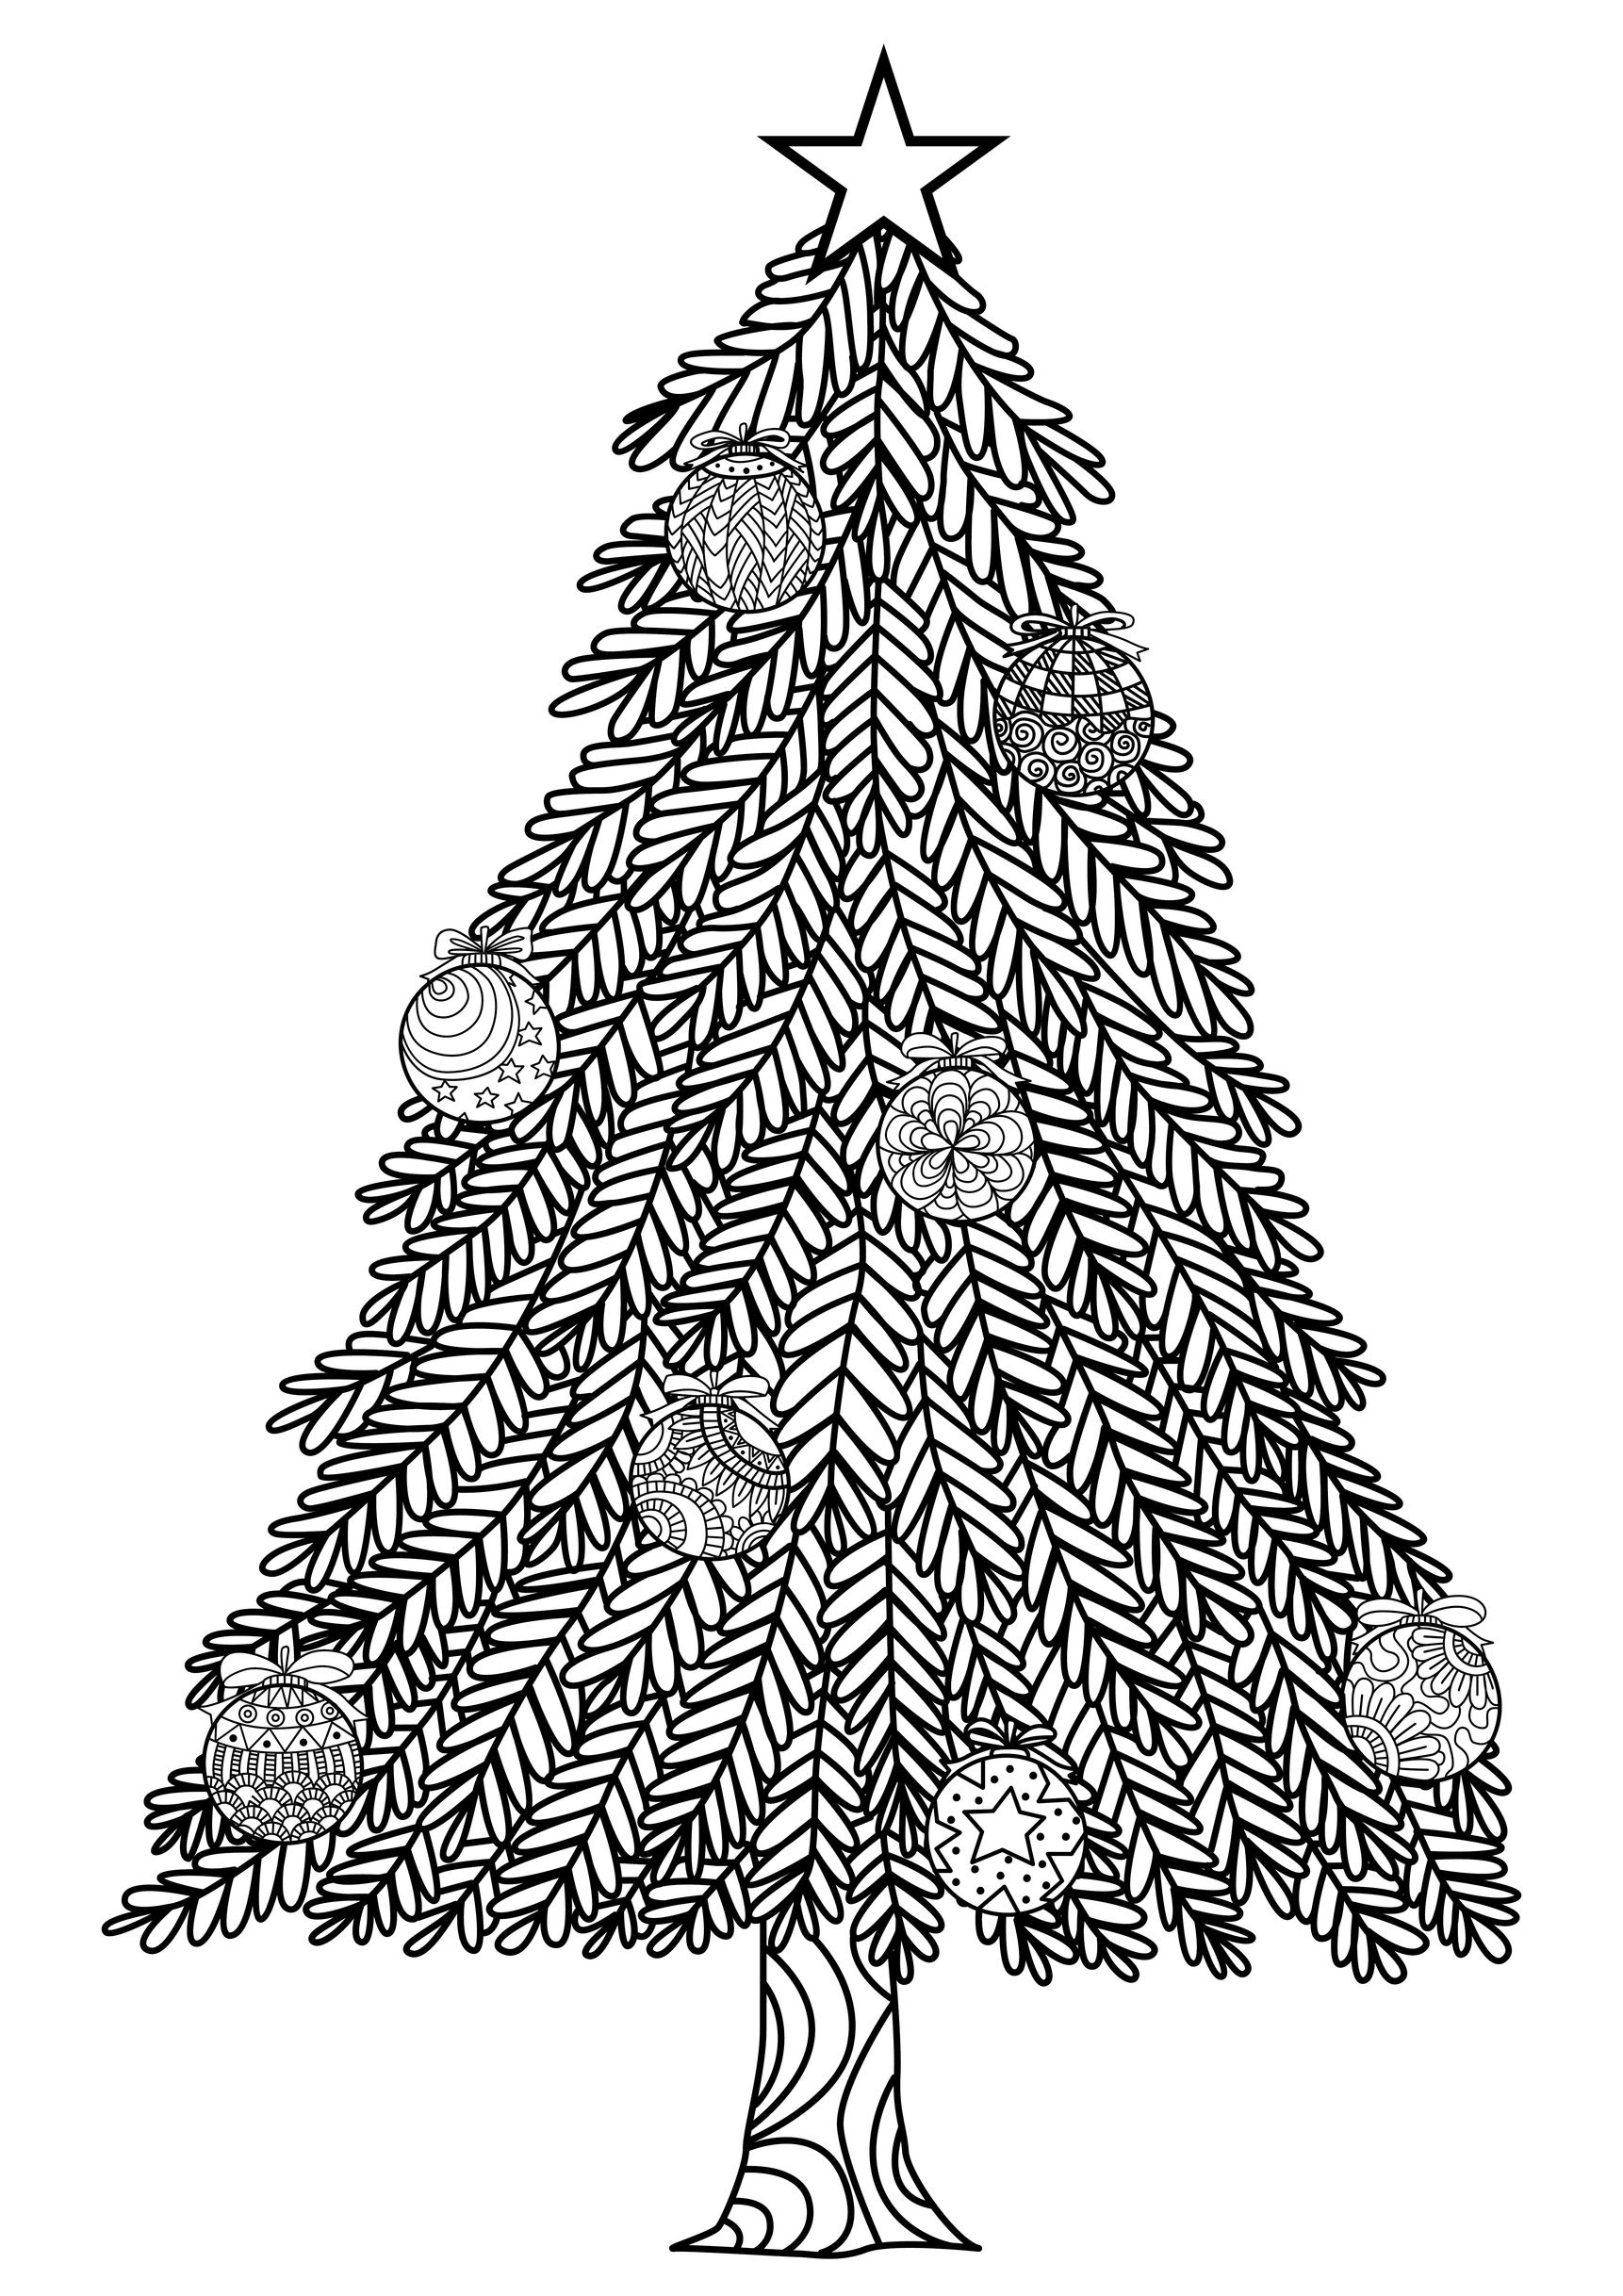 Christmas Tree With Ball Ornaments - Christmas Adult Coloring Pages - Free Printable Christmas Tree Ornaments To Color